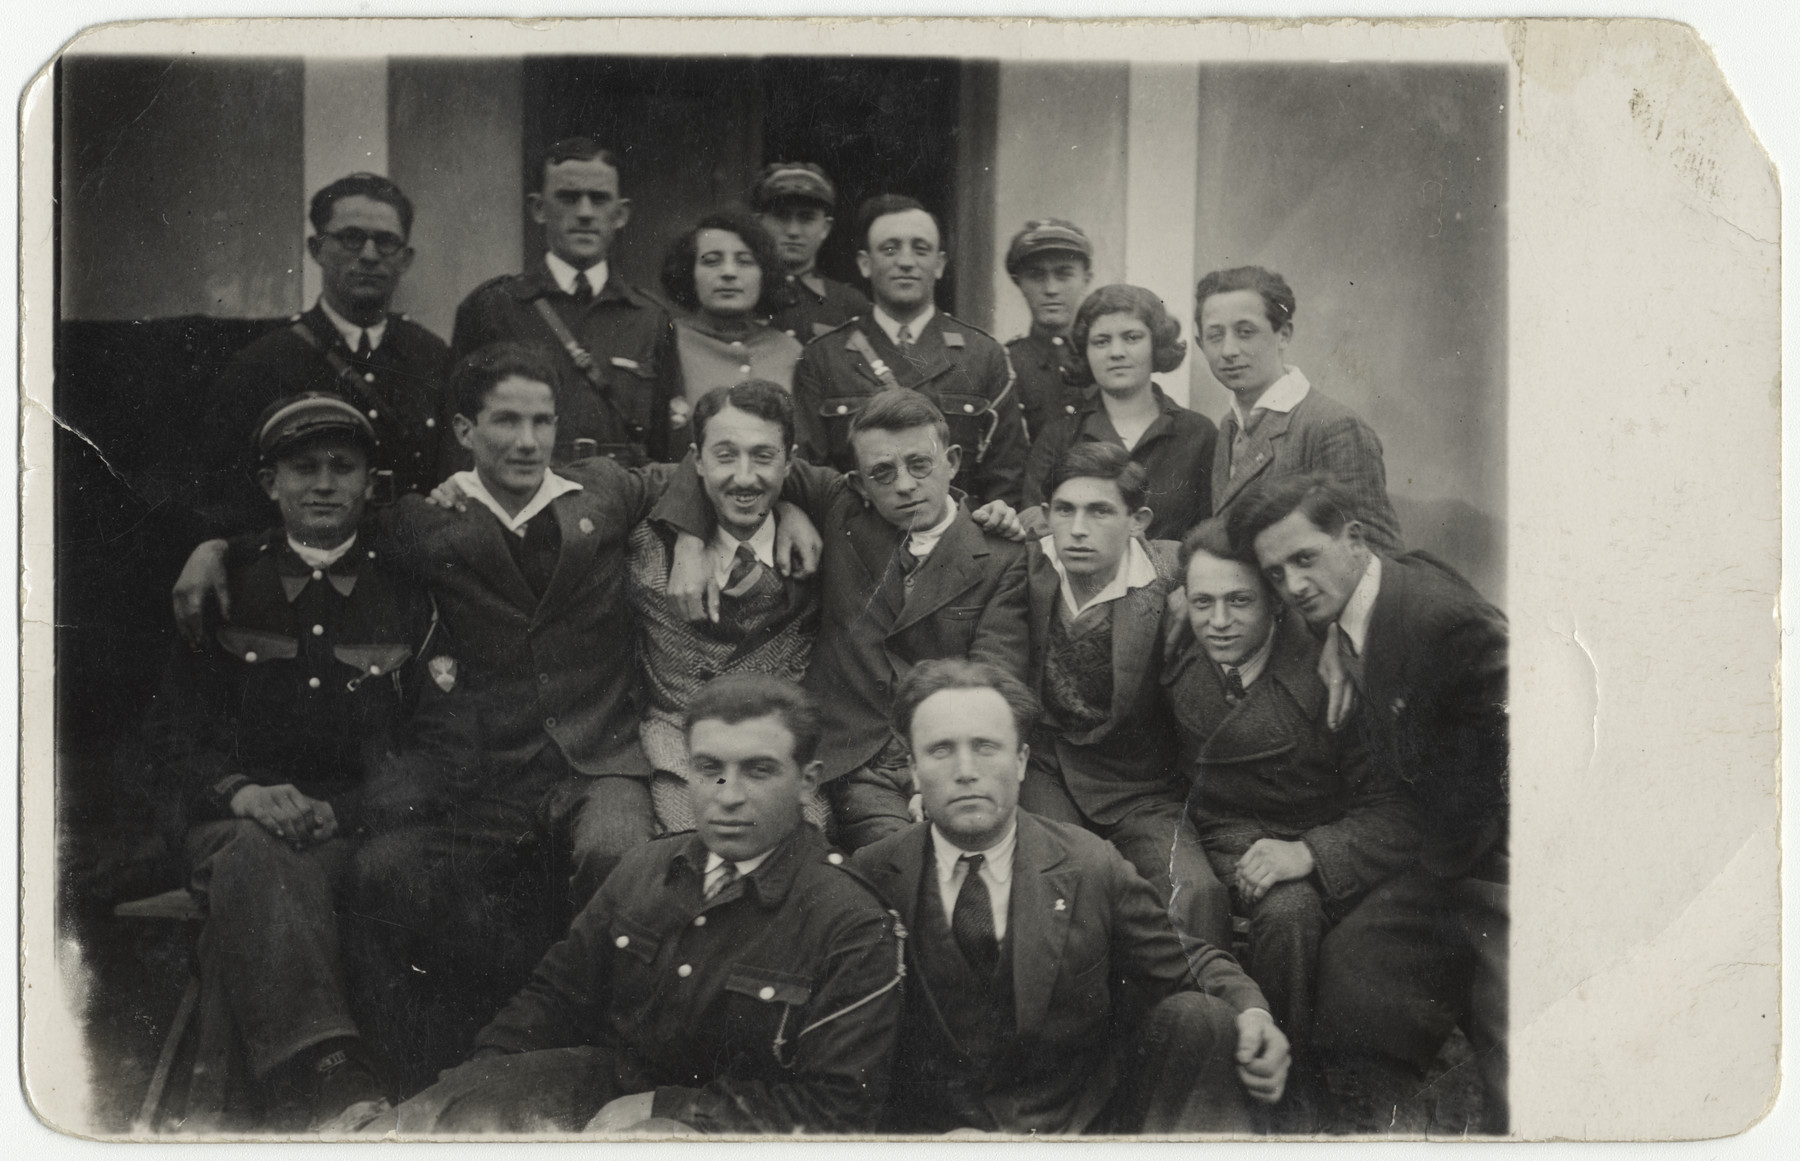 Group portrait of members of the Betar Zionist movement in prewar Uhnow  Among those pictured is Leo Beer.